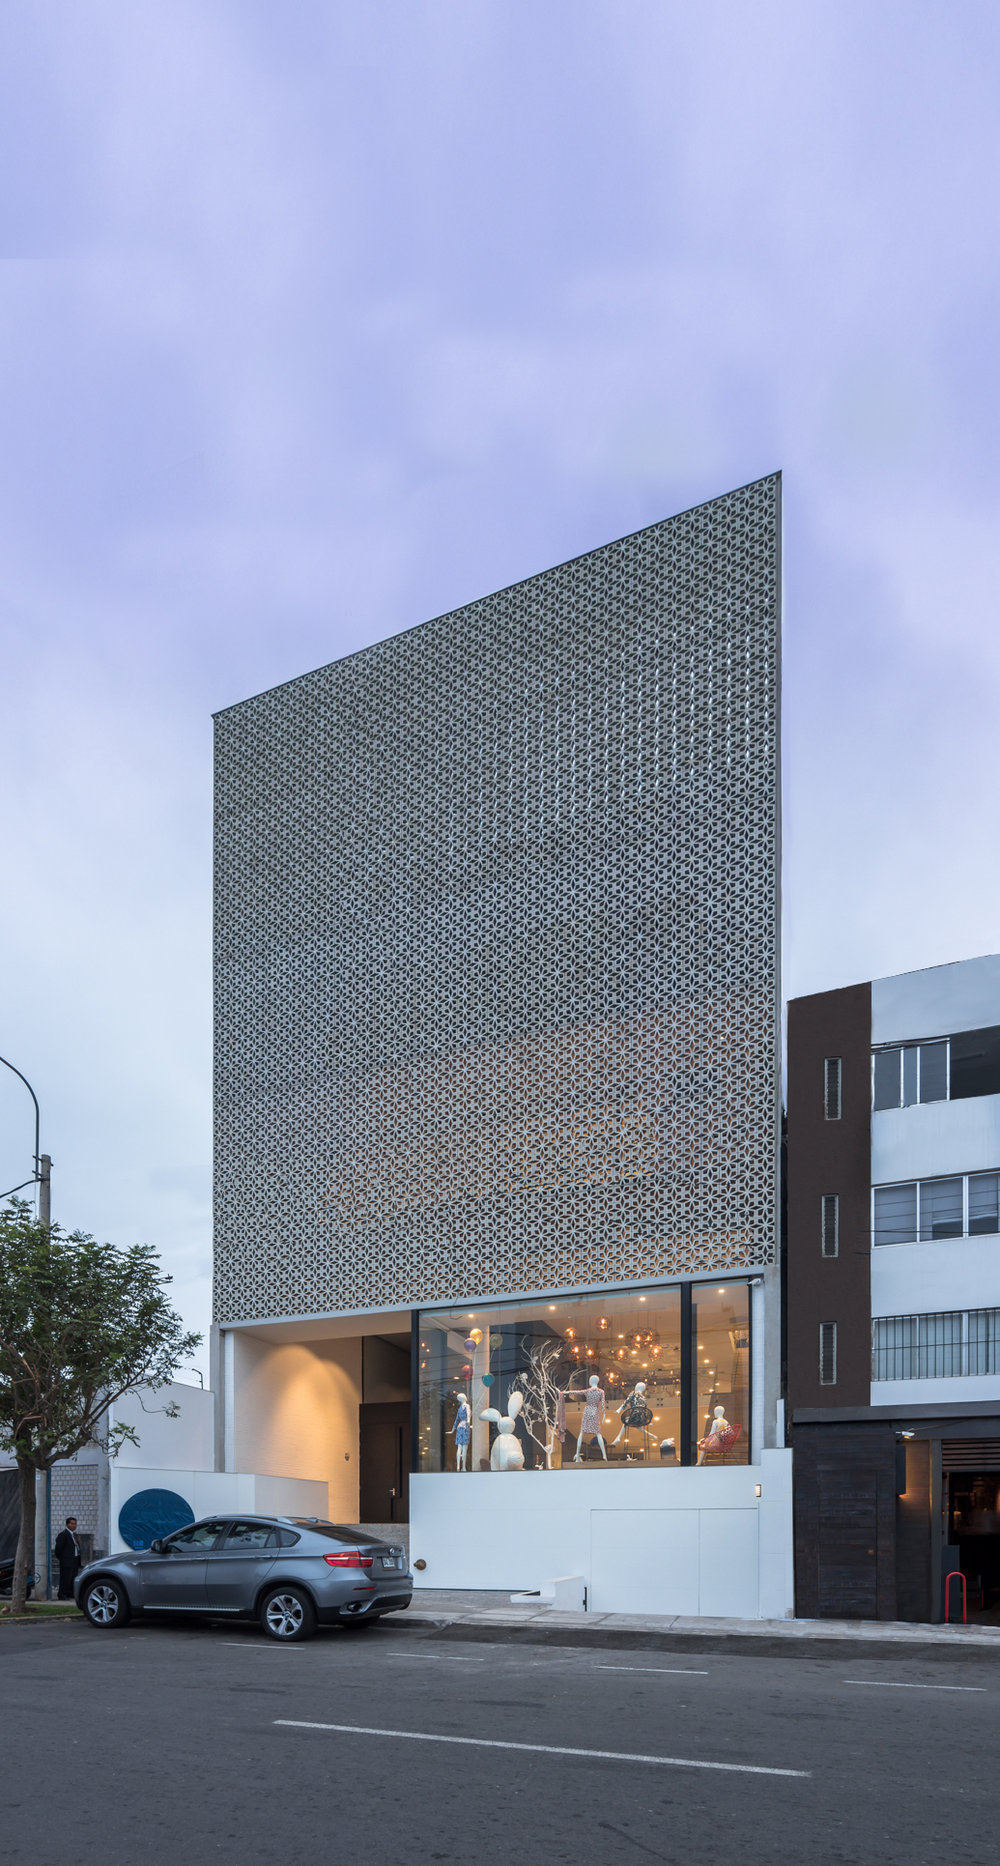 EDIFICIO MORPHOLOGY